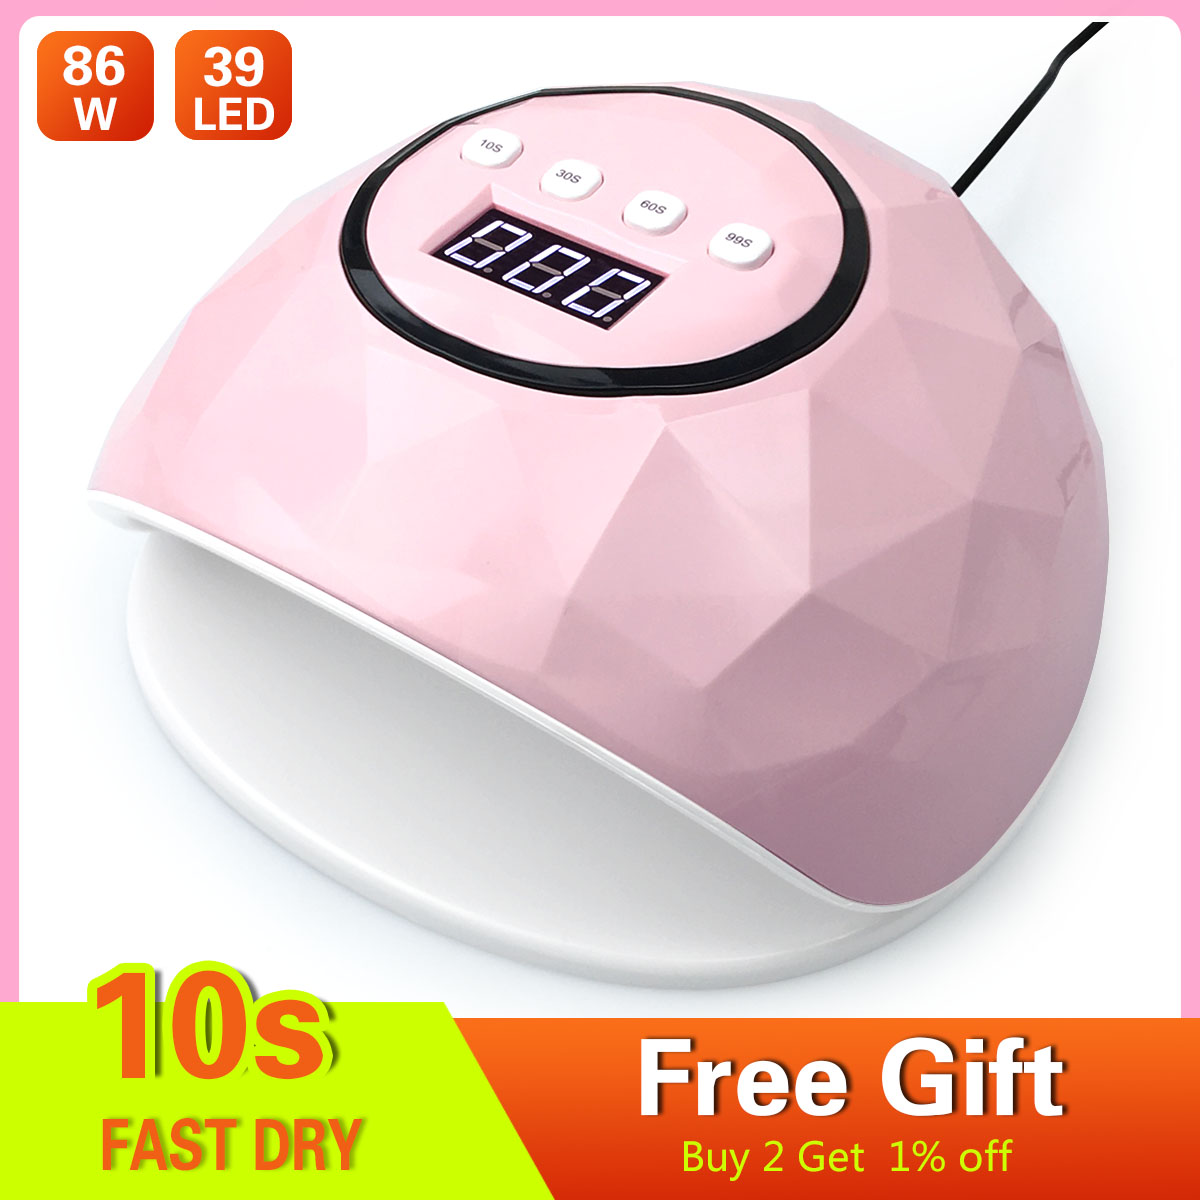 86W UV LED Lamp 39 leds Nail Dryer For Curing UV Gel Nail Polish With Sensor Nail Art Machine Manicure Tool image